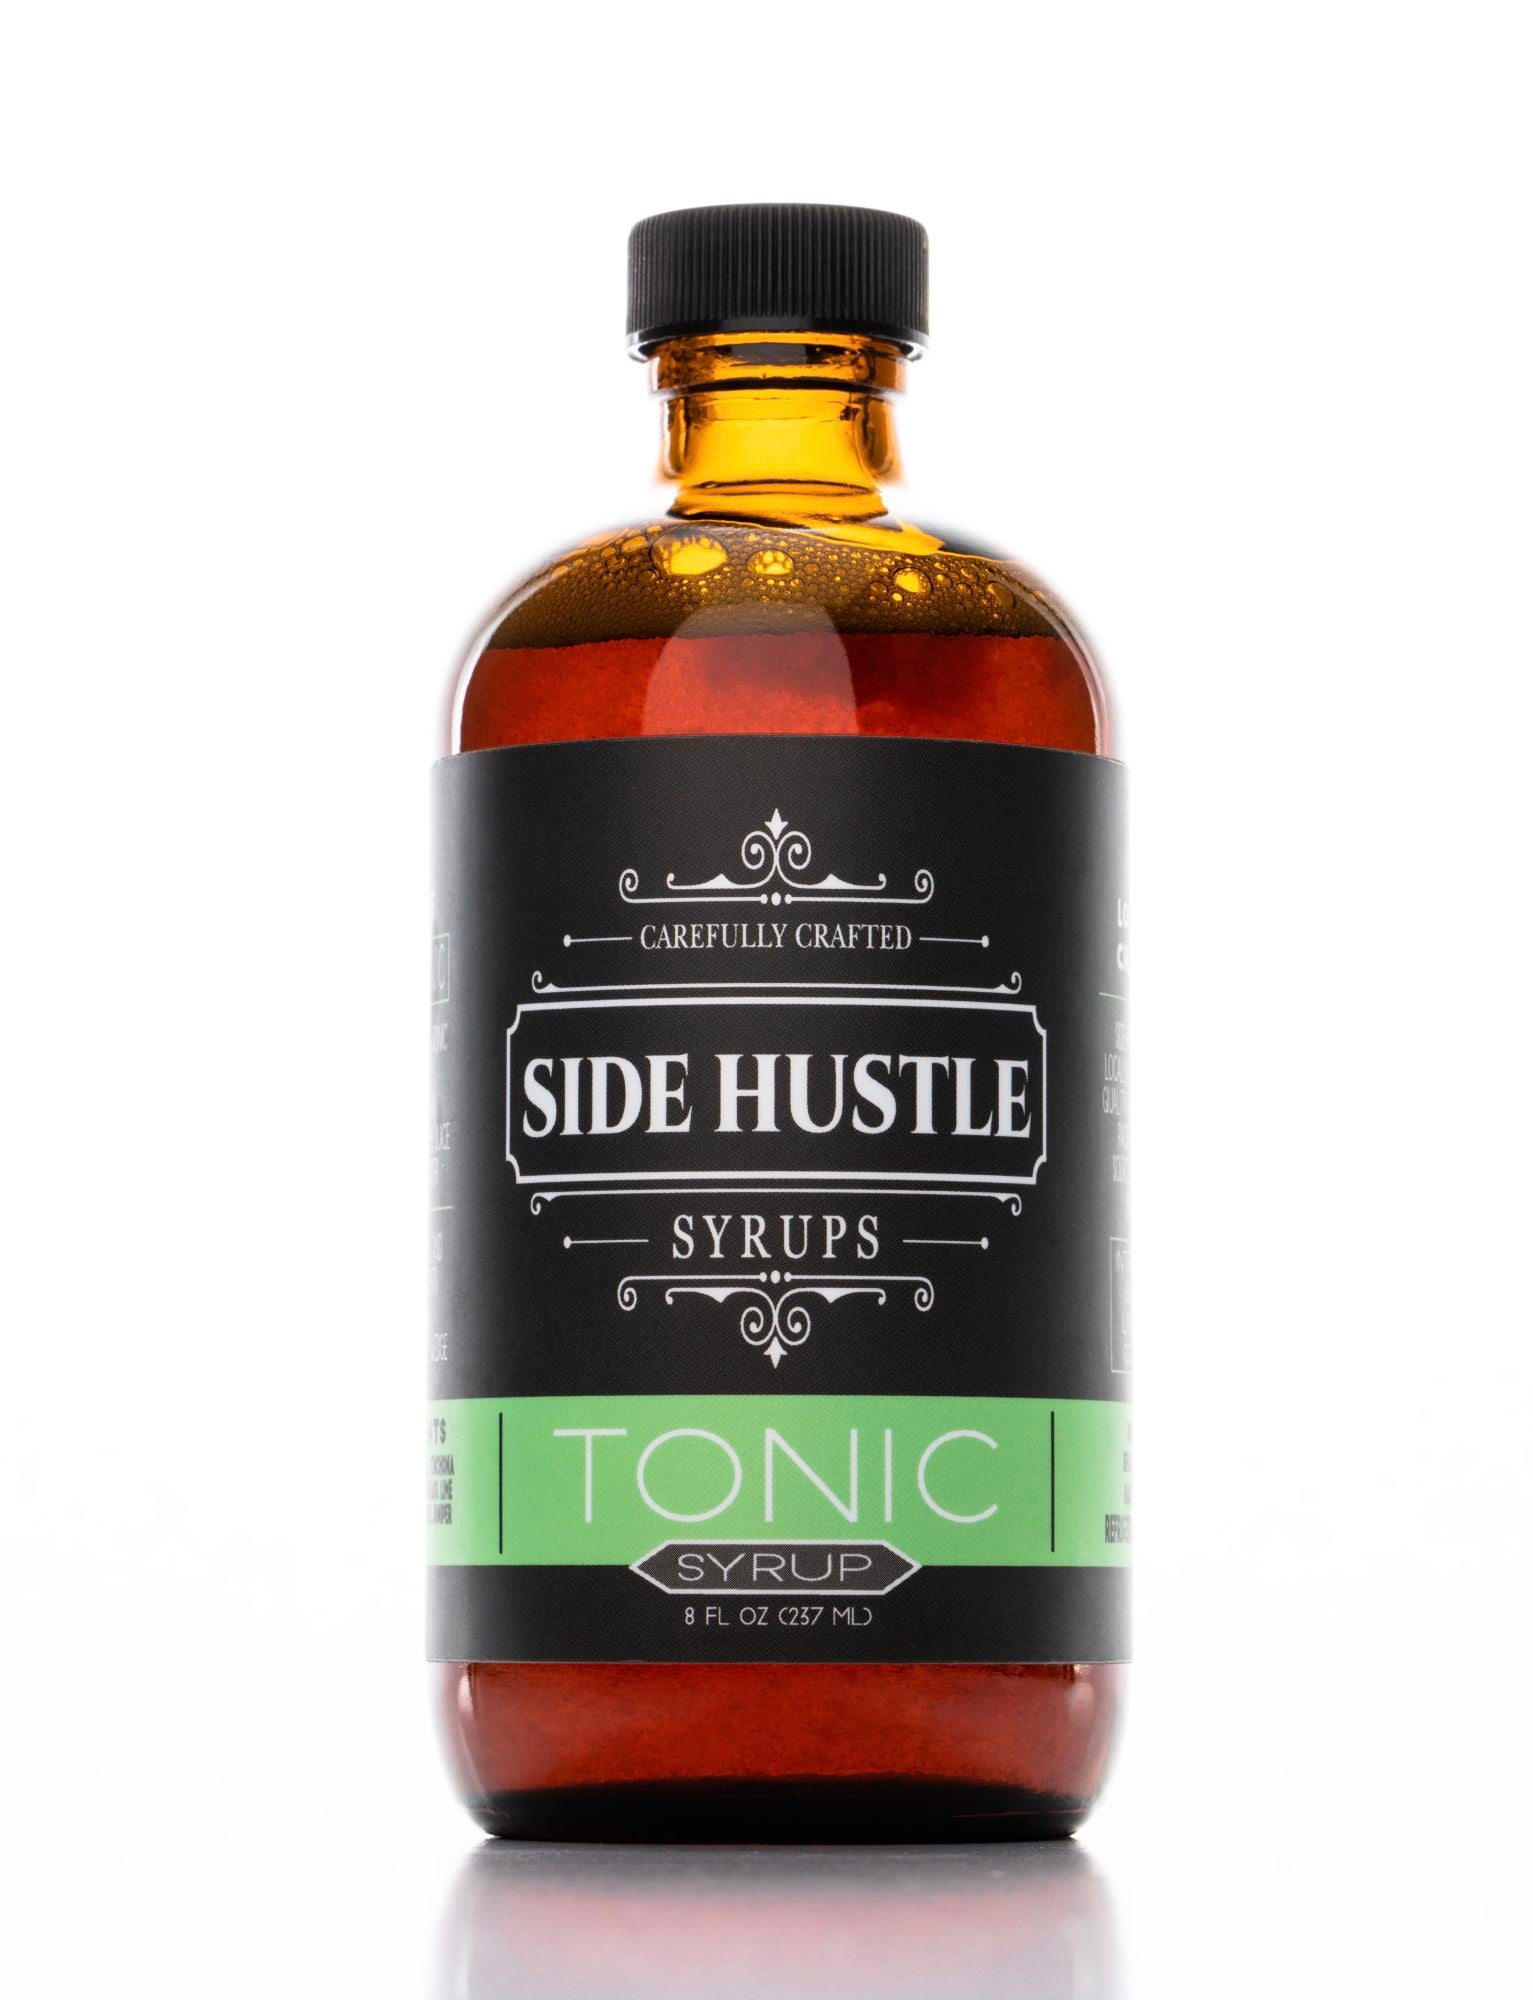 Tonic Syrup - 8oz